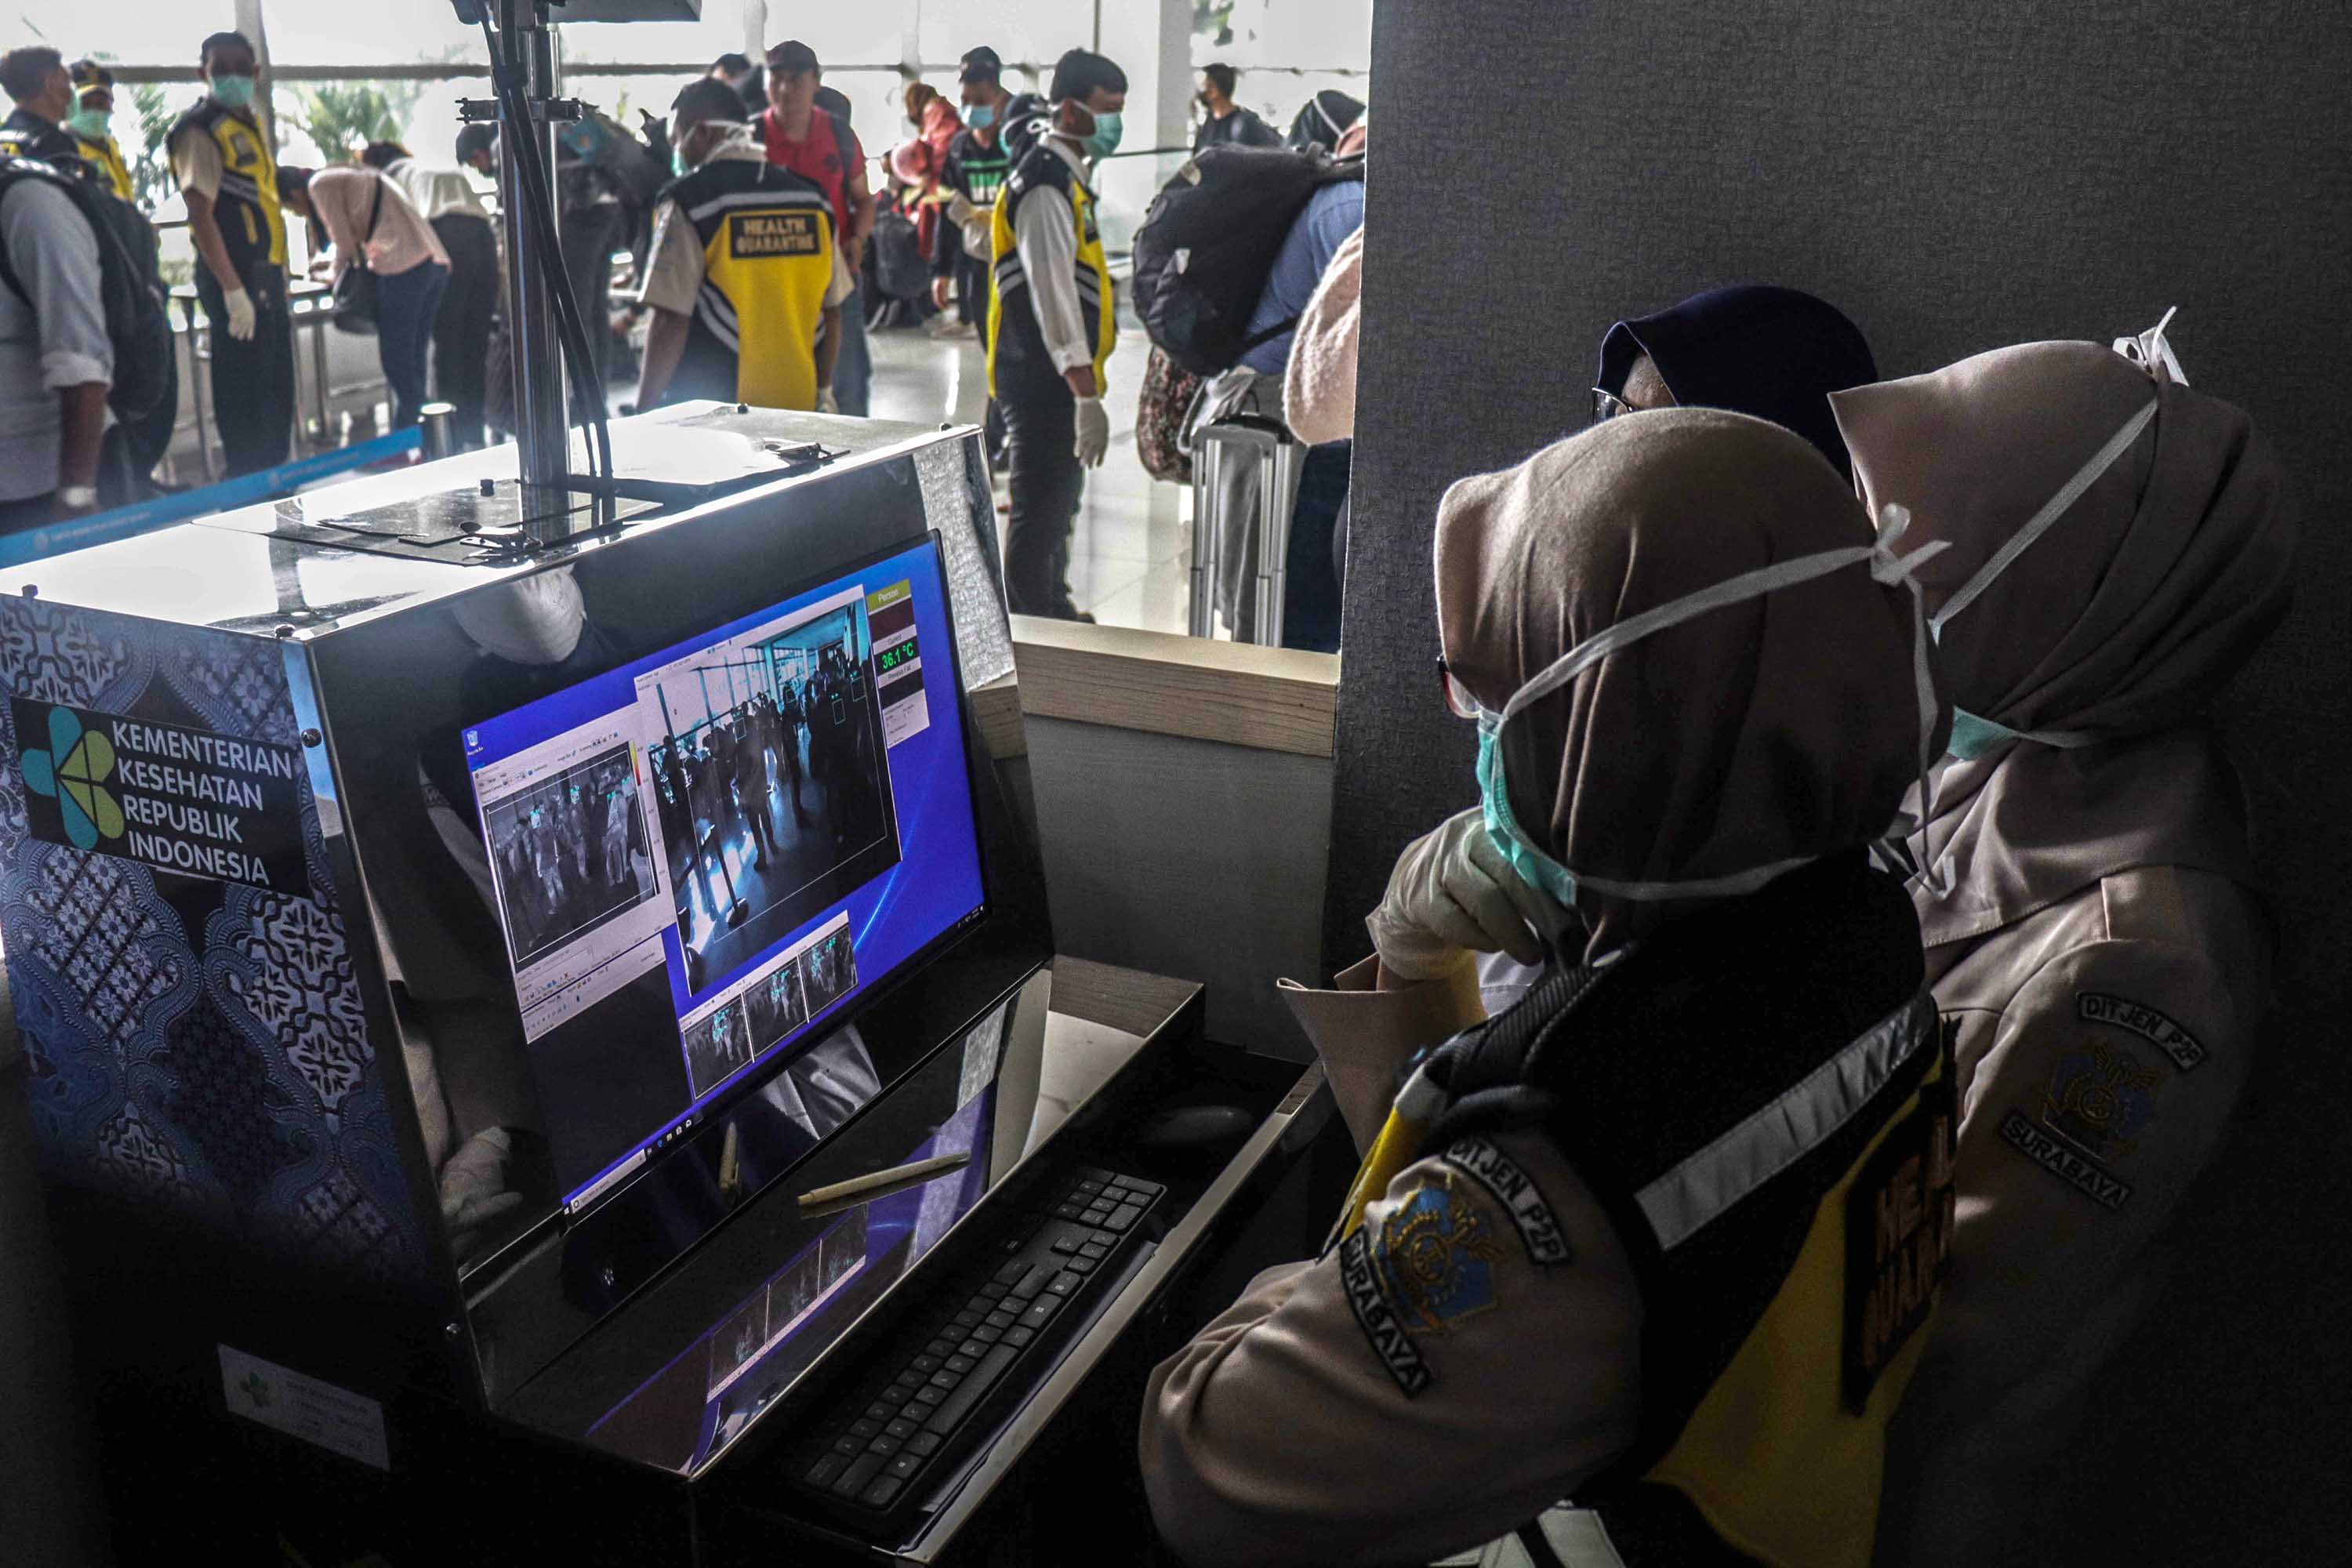 Health officers monitor a thermal scanner as passengers from Singapore, China and Hong Kong arrive at Juanda International Airport in Surabaya, East Java, Indonesia, on January 30.